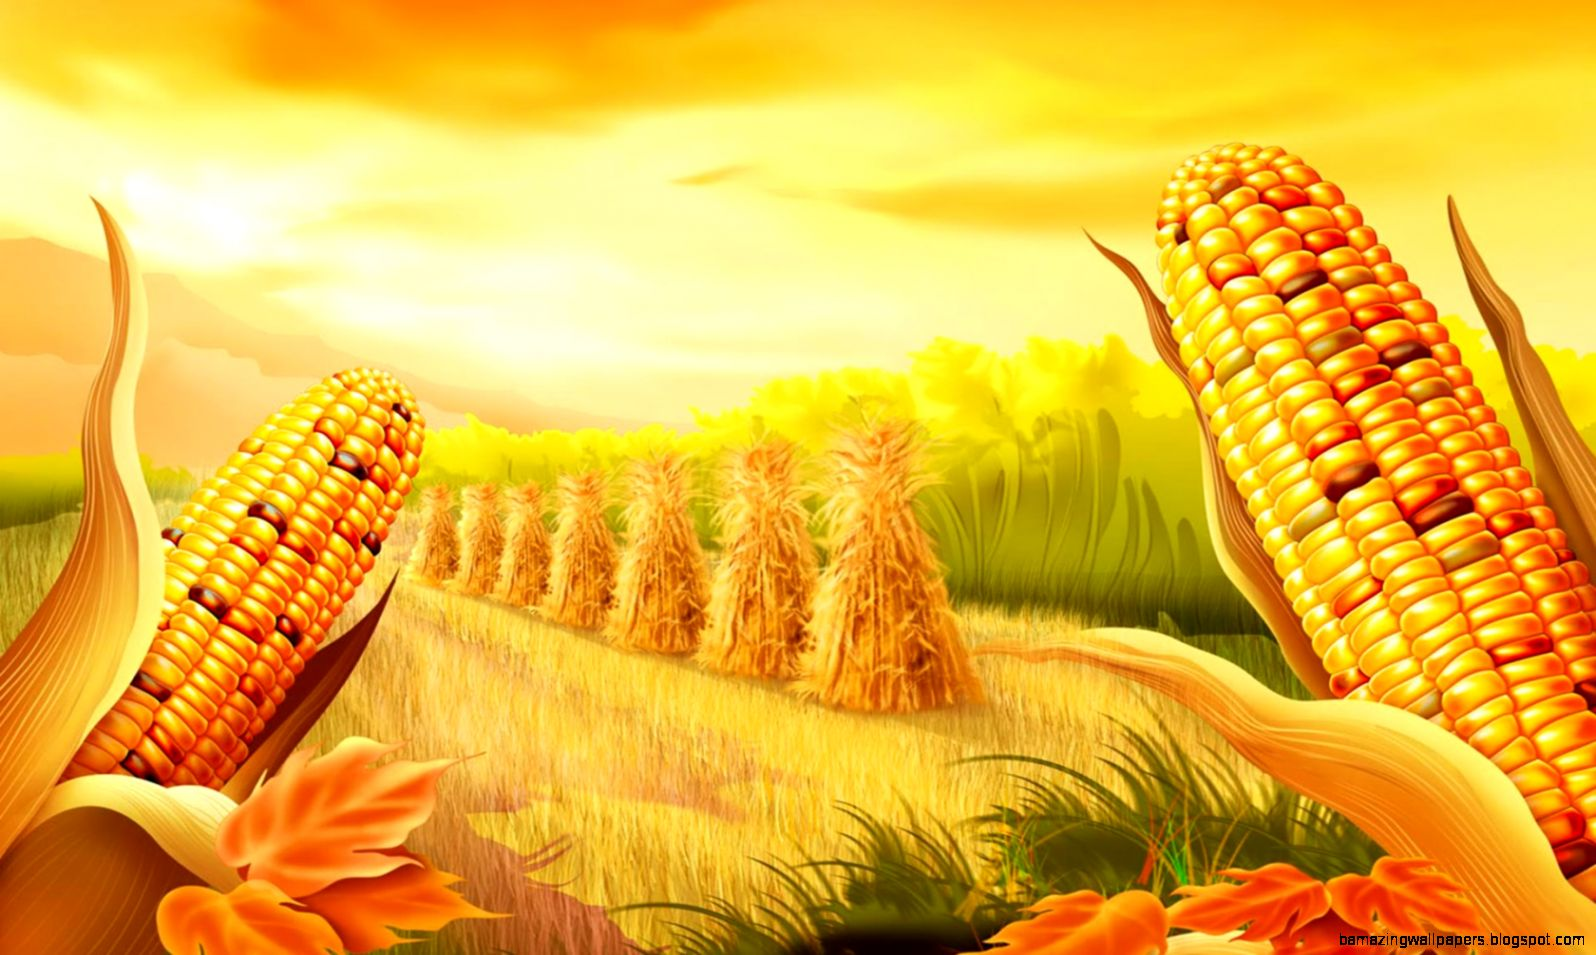 Corn Harvest widescreen wallpaper